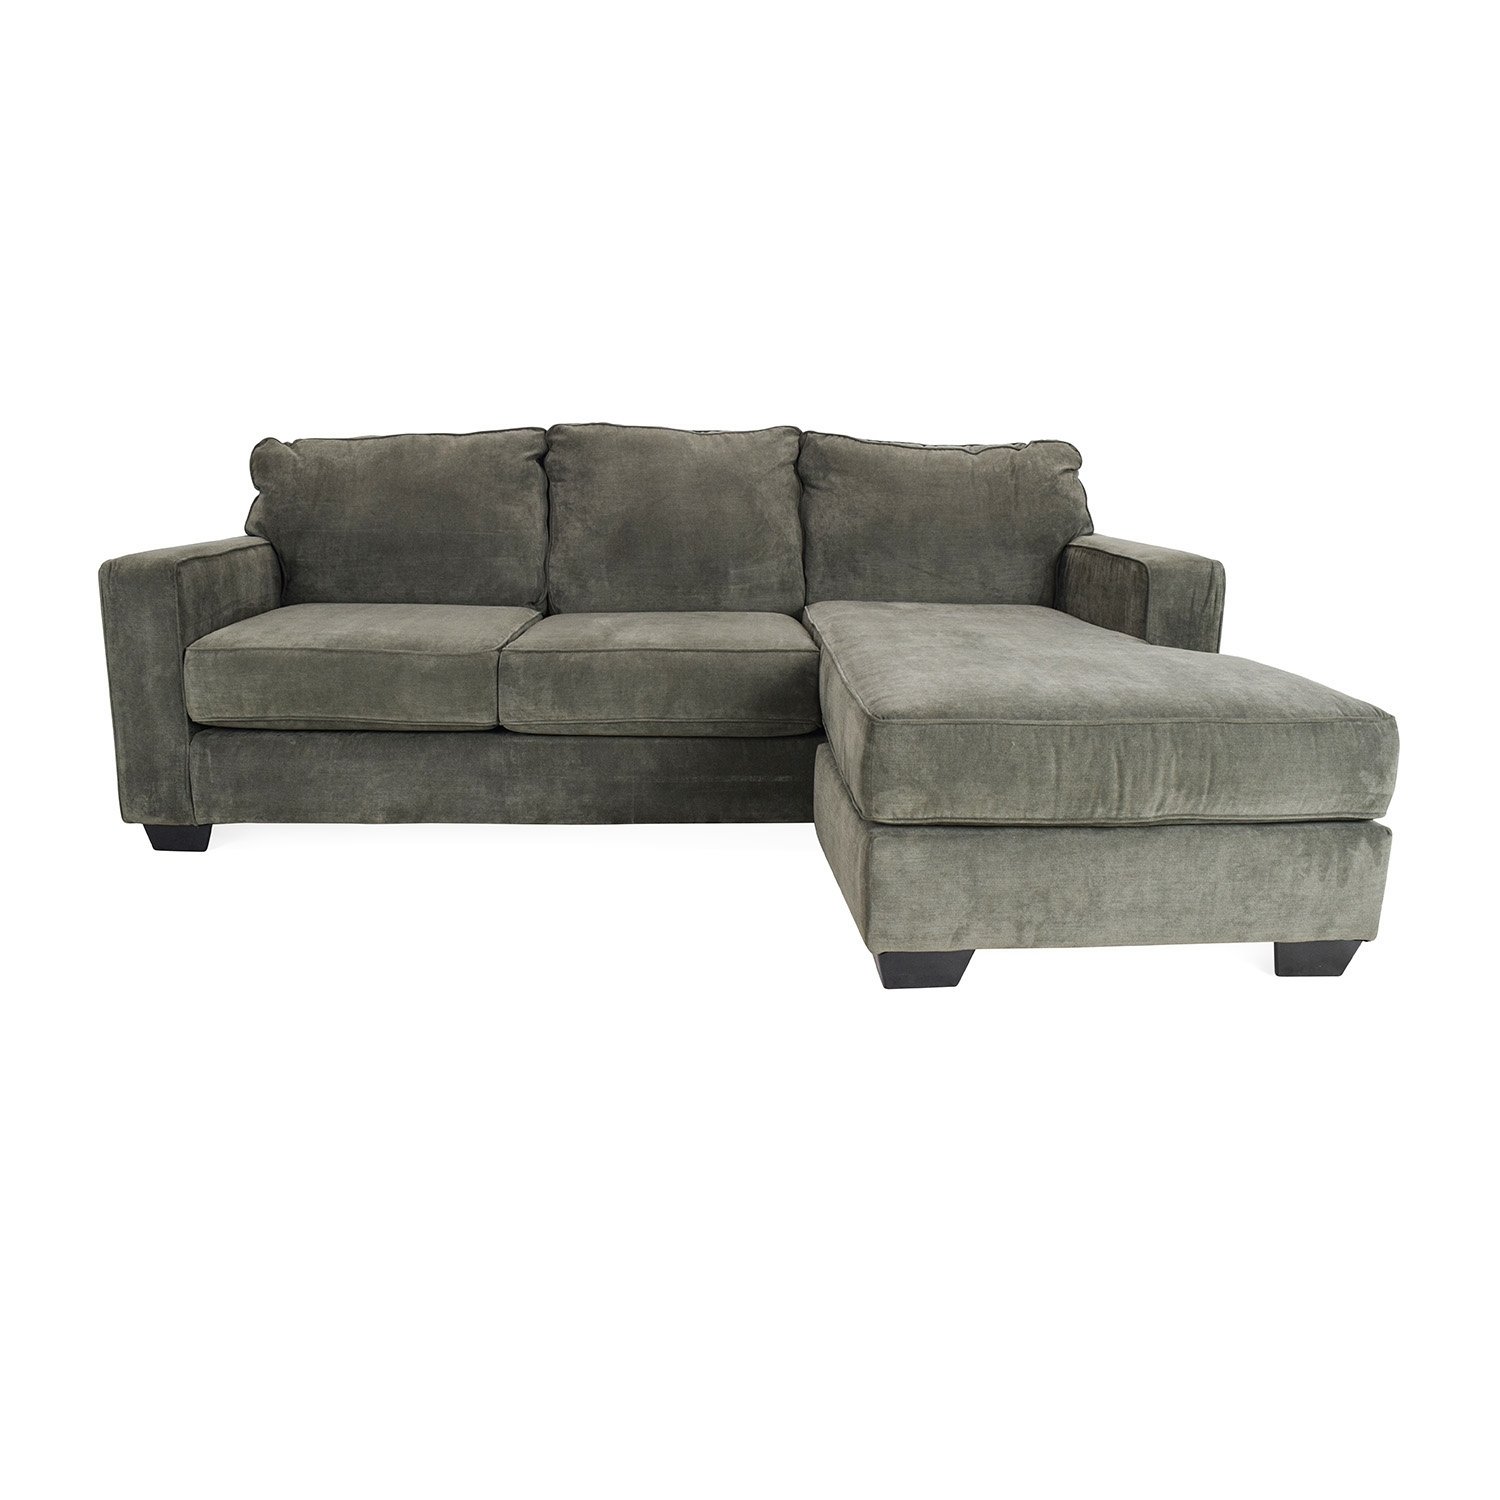 54% Off - Jennifer Convertibles Jennifer Convertibles Sectional Sofa inside Jennifer Convertibles Sectional Sofas (Image 1 of 10)